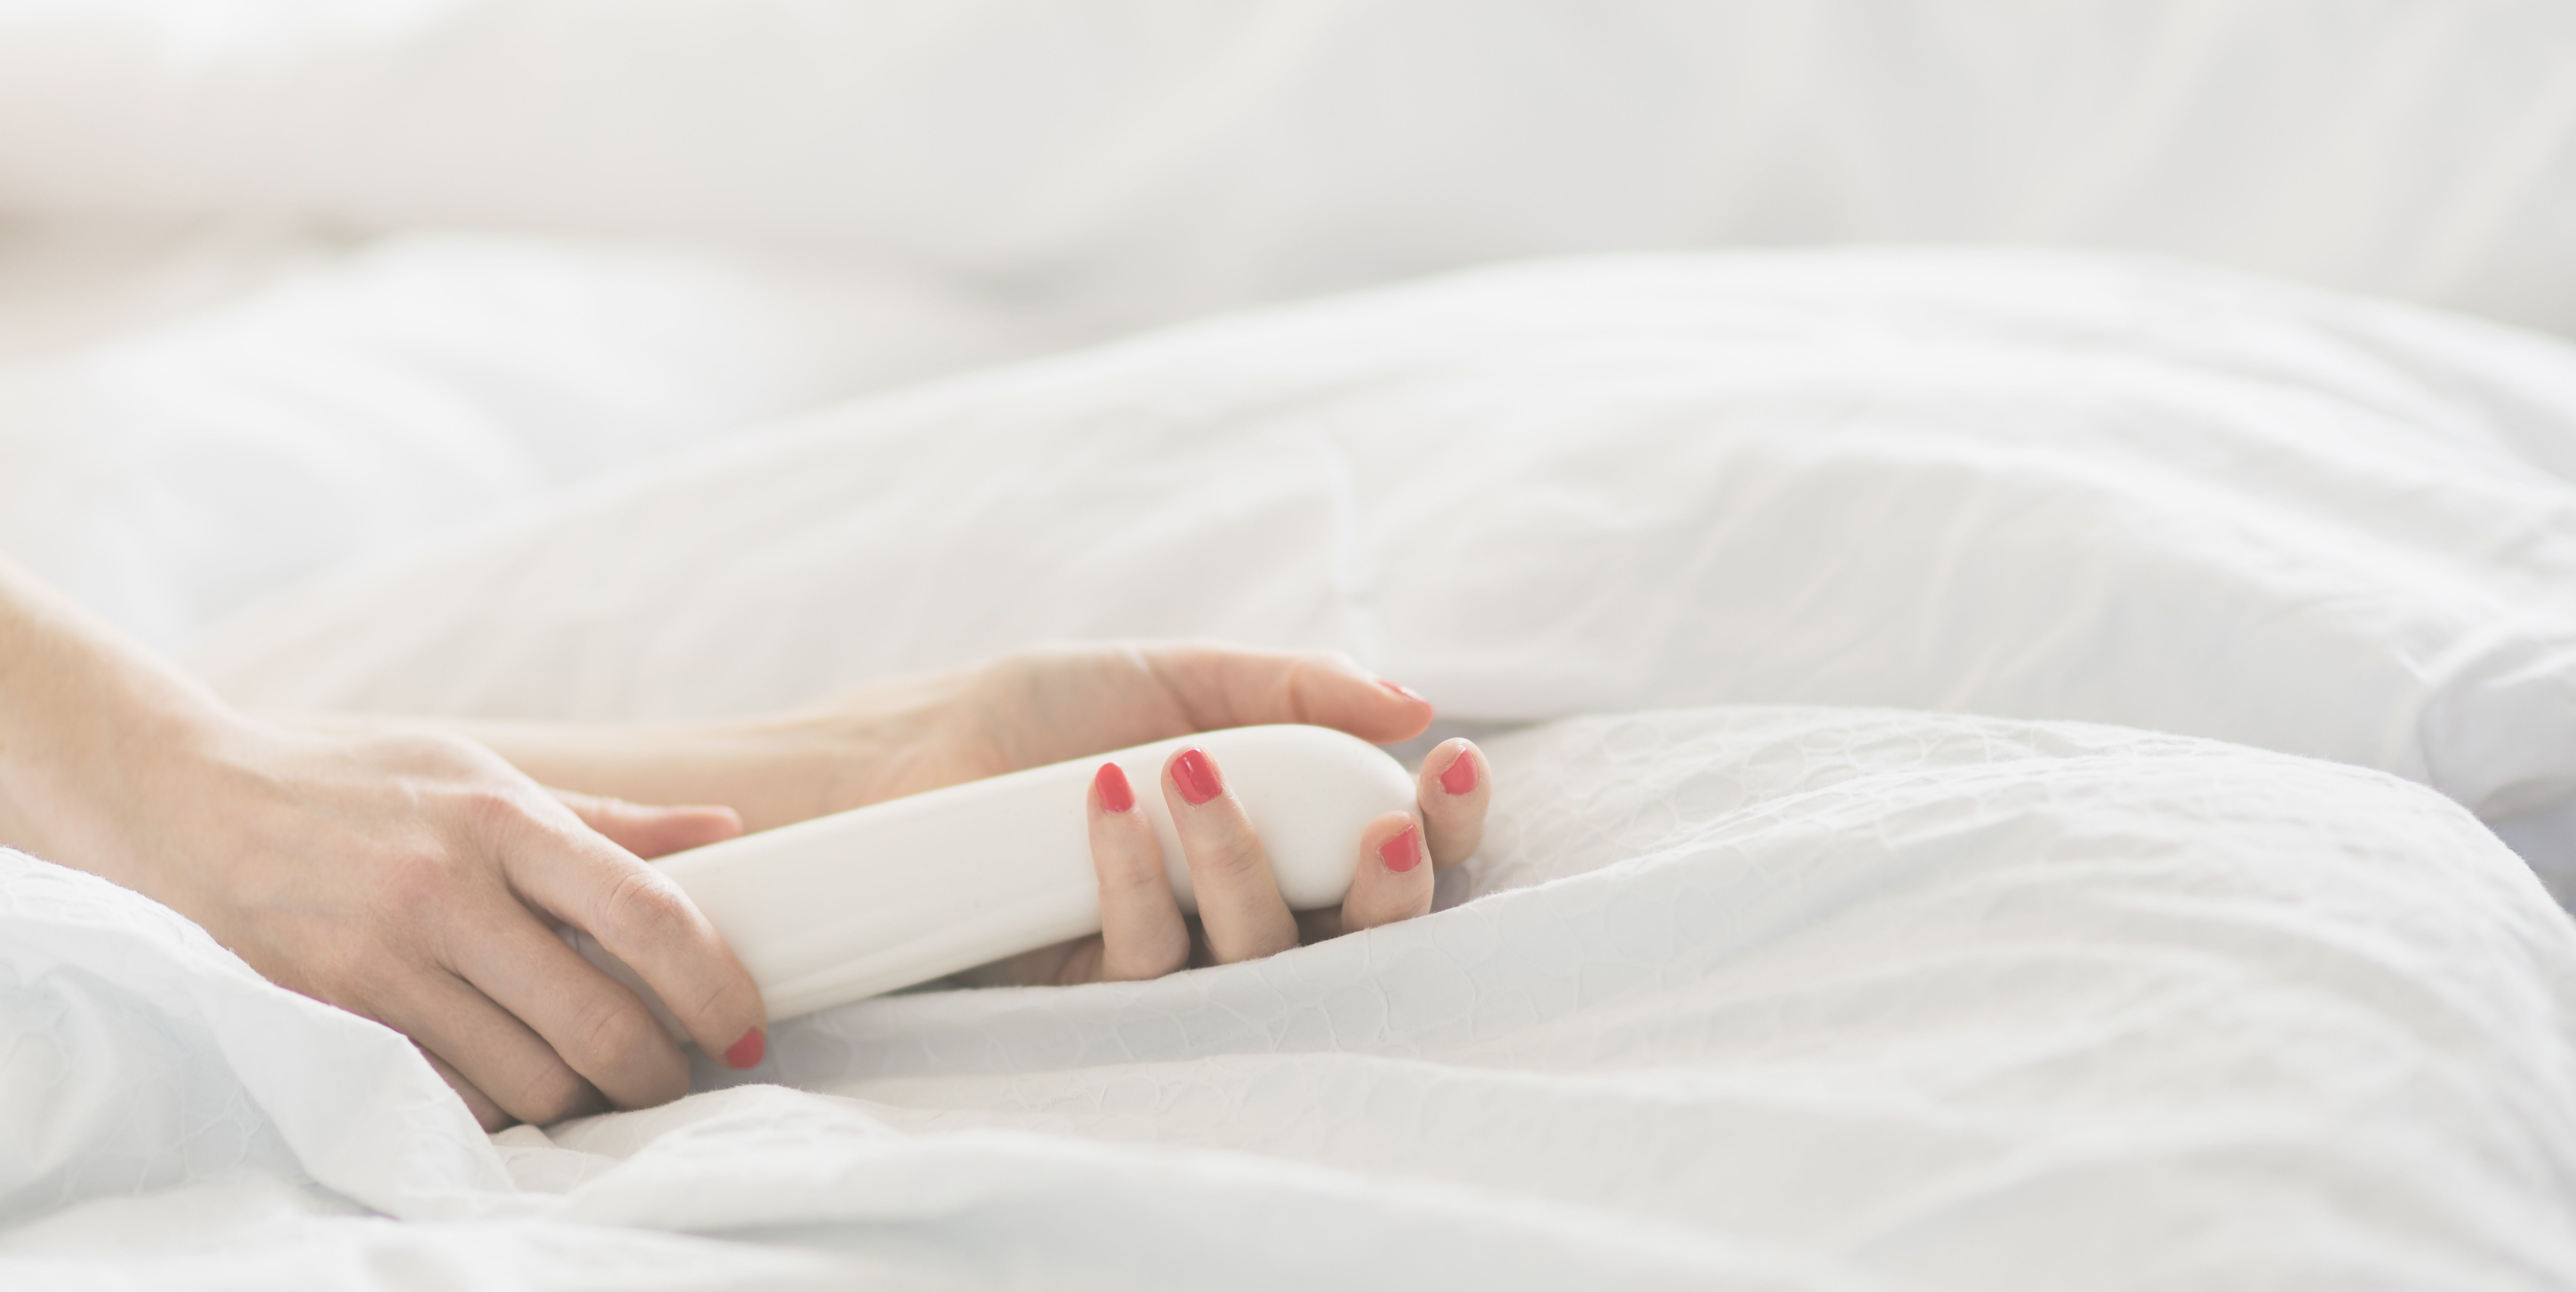 Hand of woman holding sex toy in bed